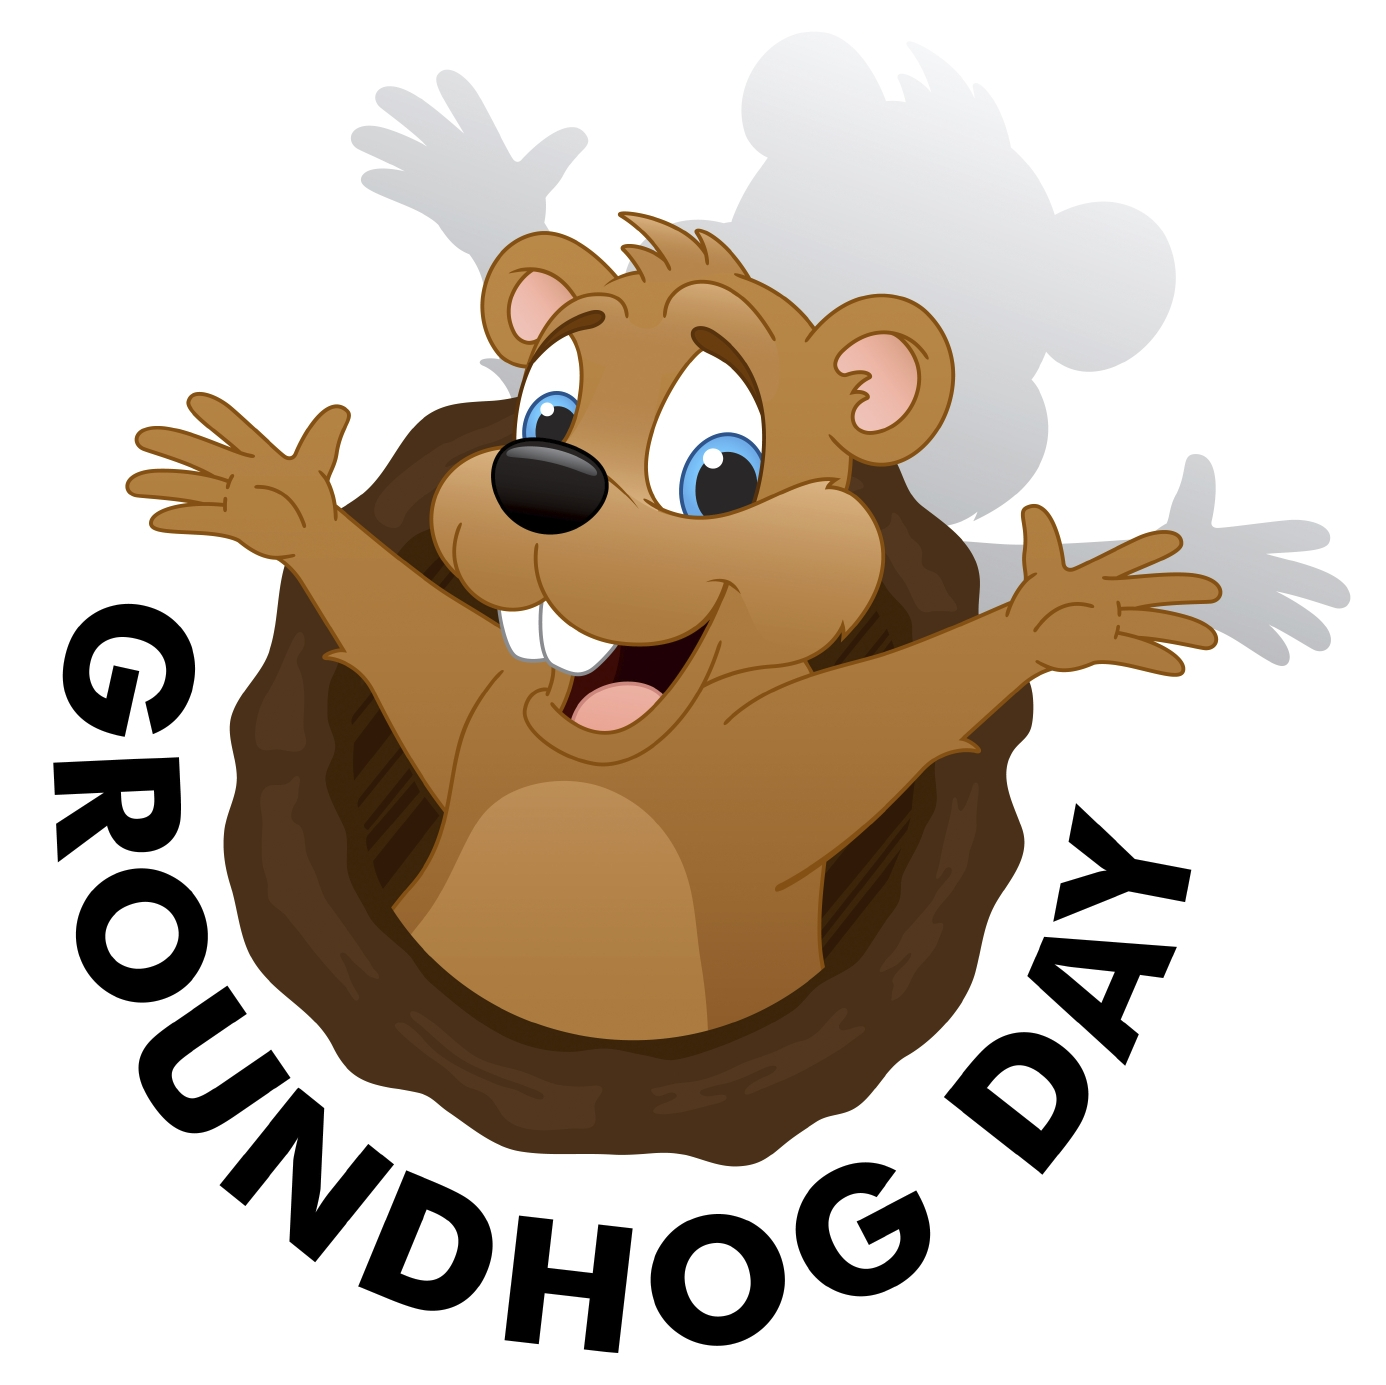 2018 clipart groundhog day. Fresh gallery digital collection